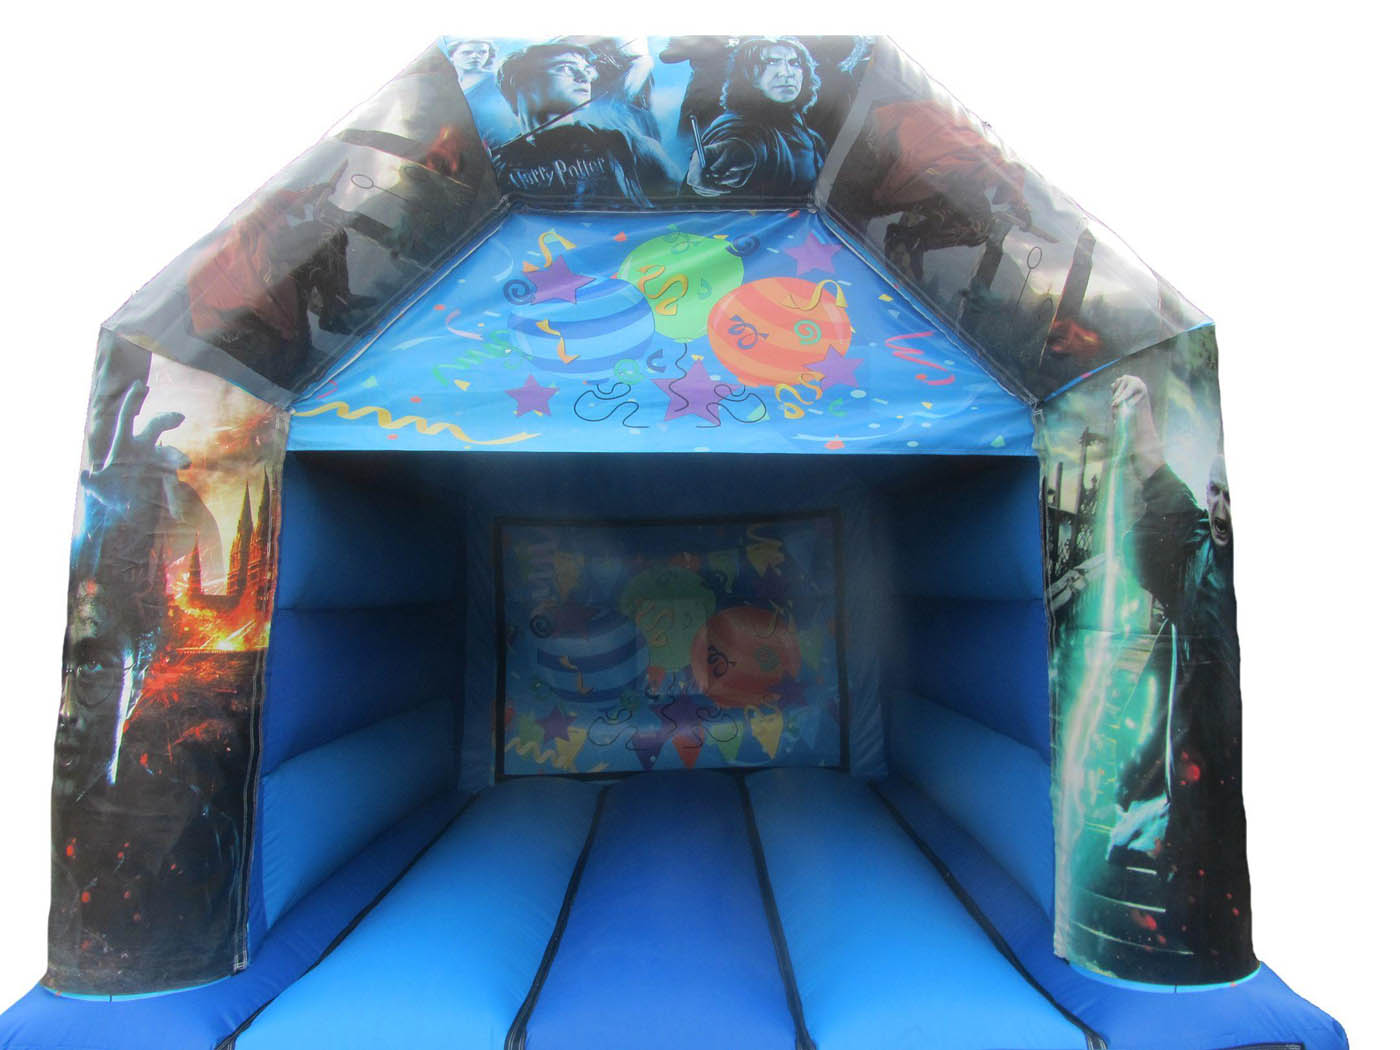 Harry-potter-bouncy-castle-velcro-art-work-compressor